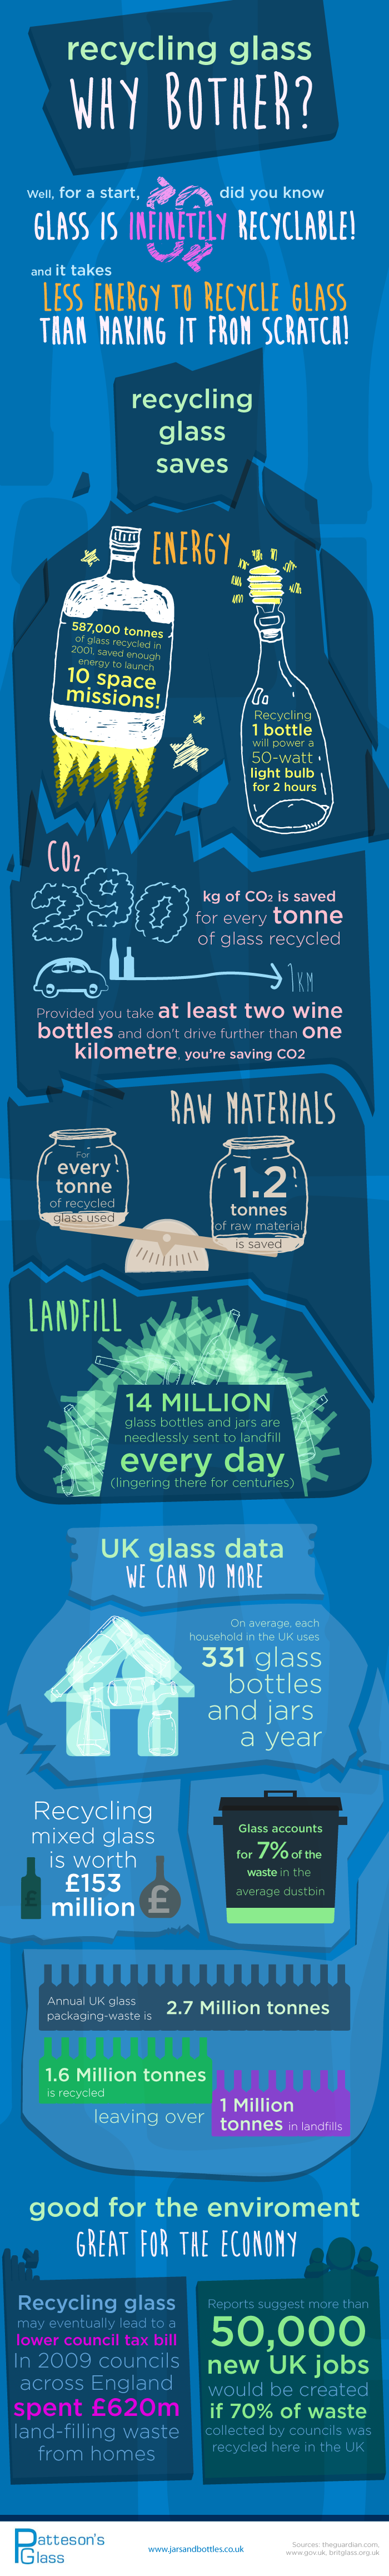 This infographic shows interesting facts all about recycling glass. Read all about the environmental benefits of recycling.